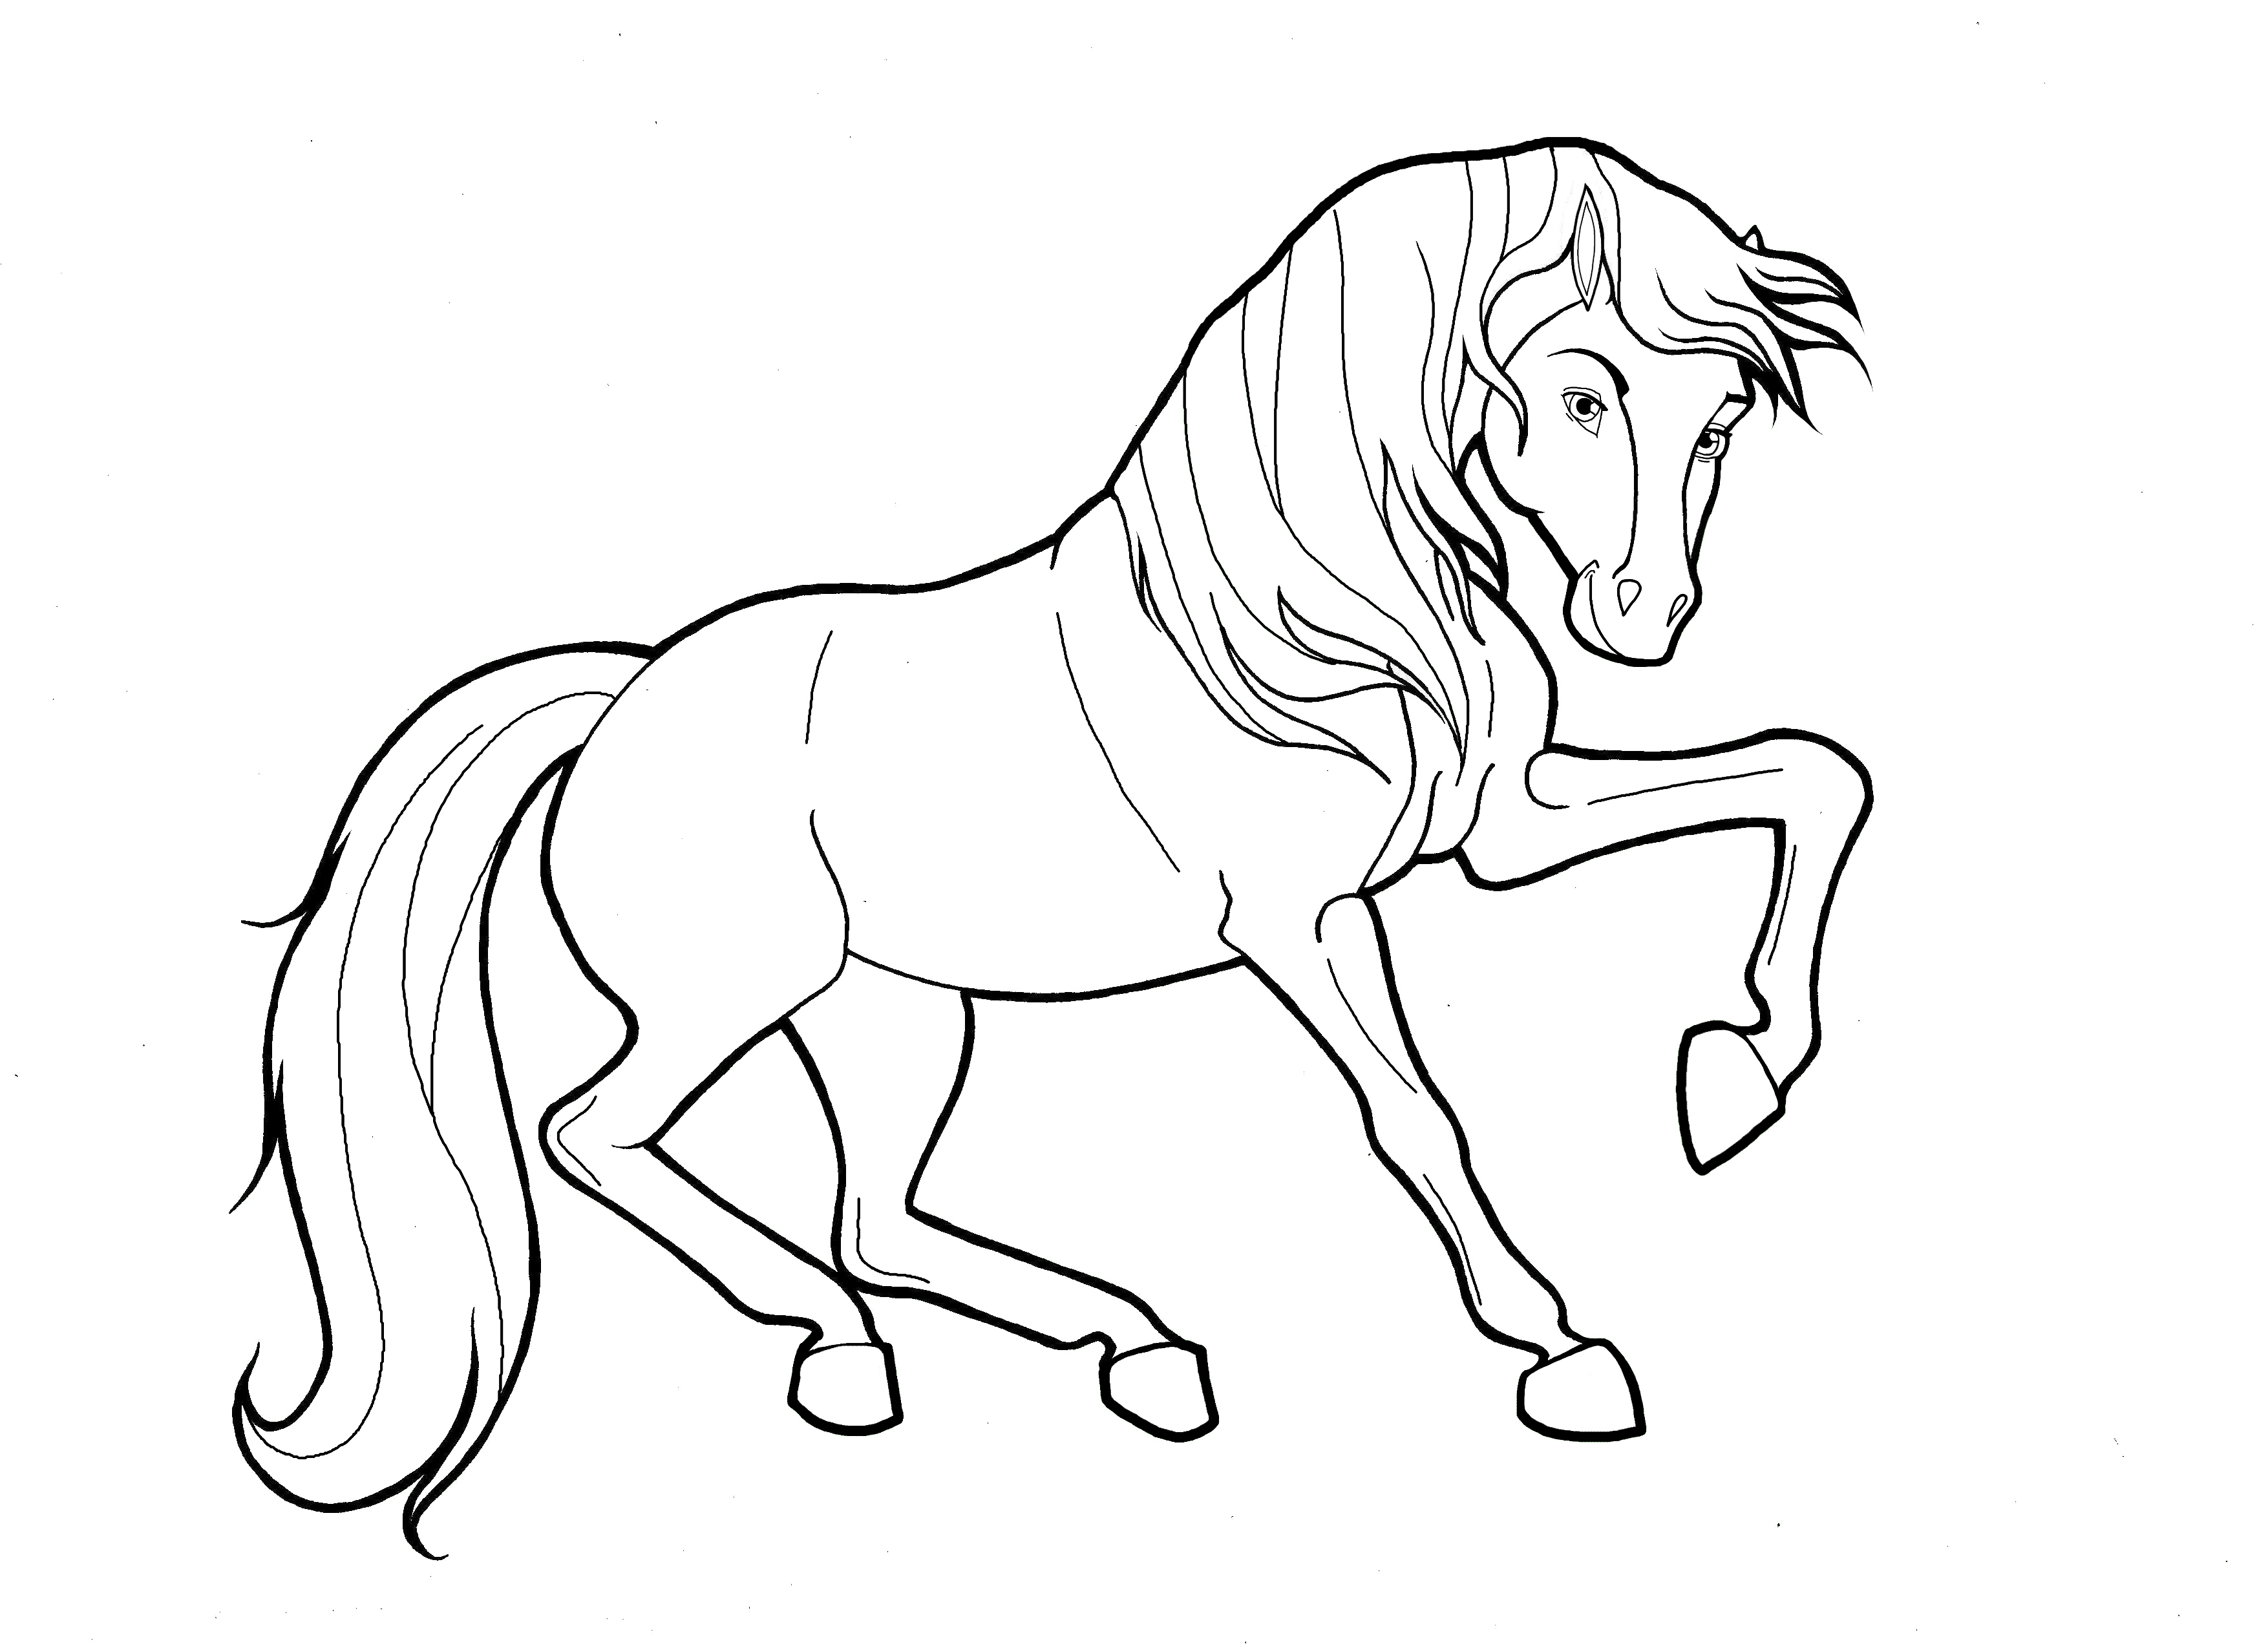 horse pages to color horse coloring pages for kids coloring pages for kids pages horse color to